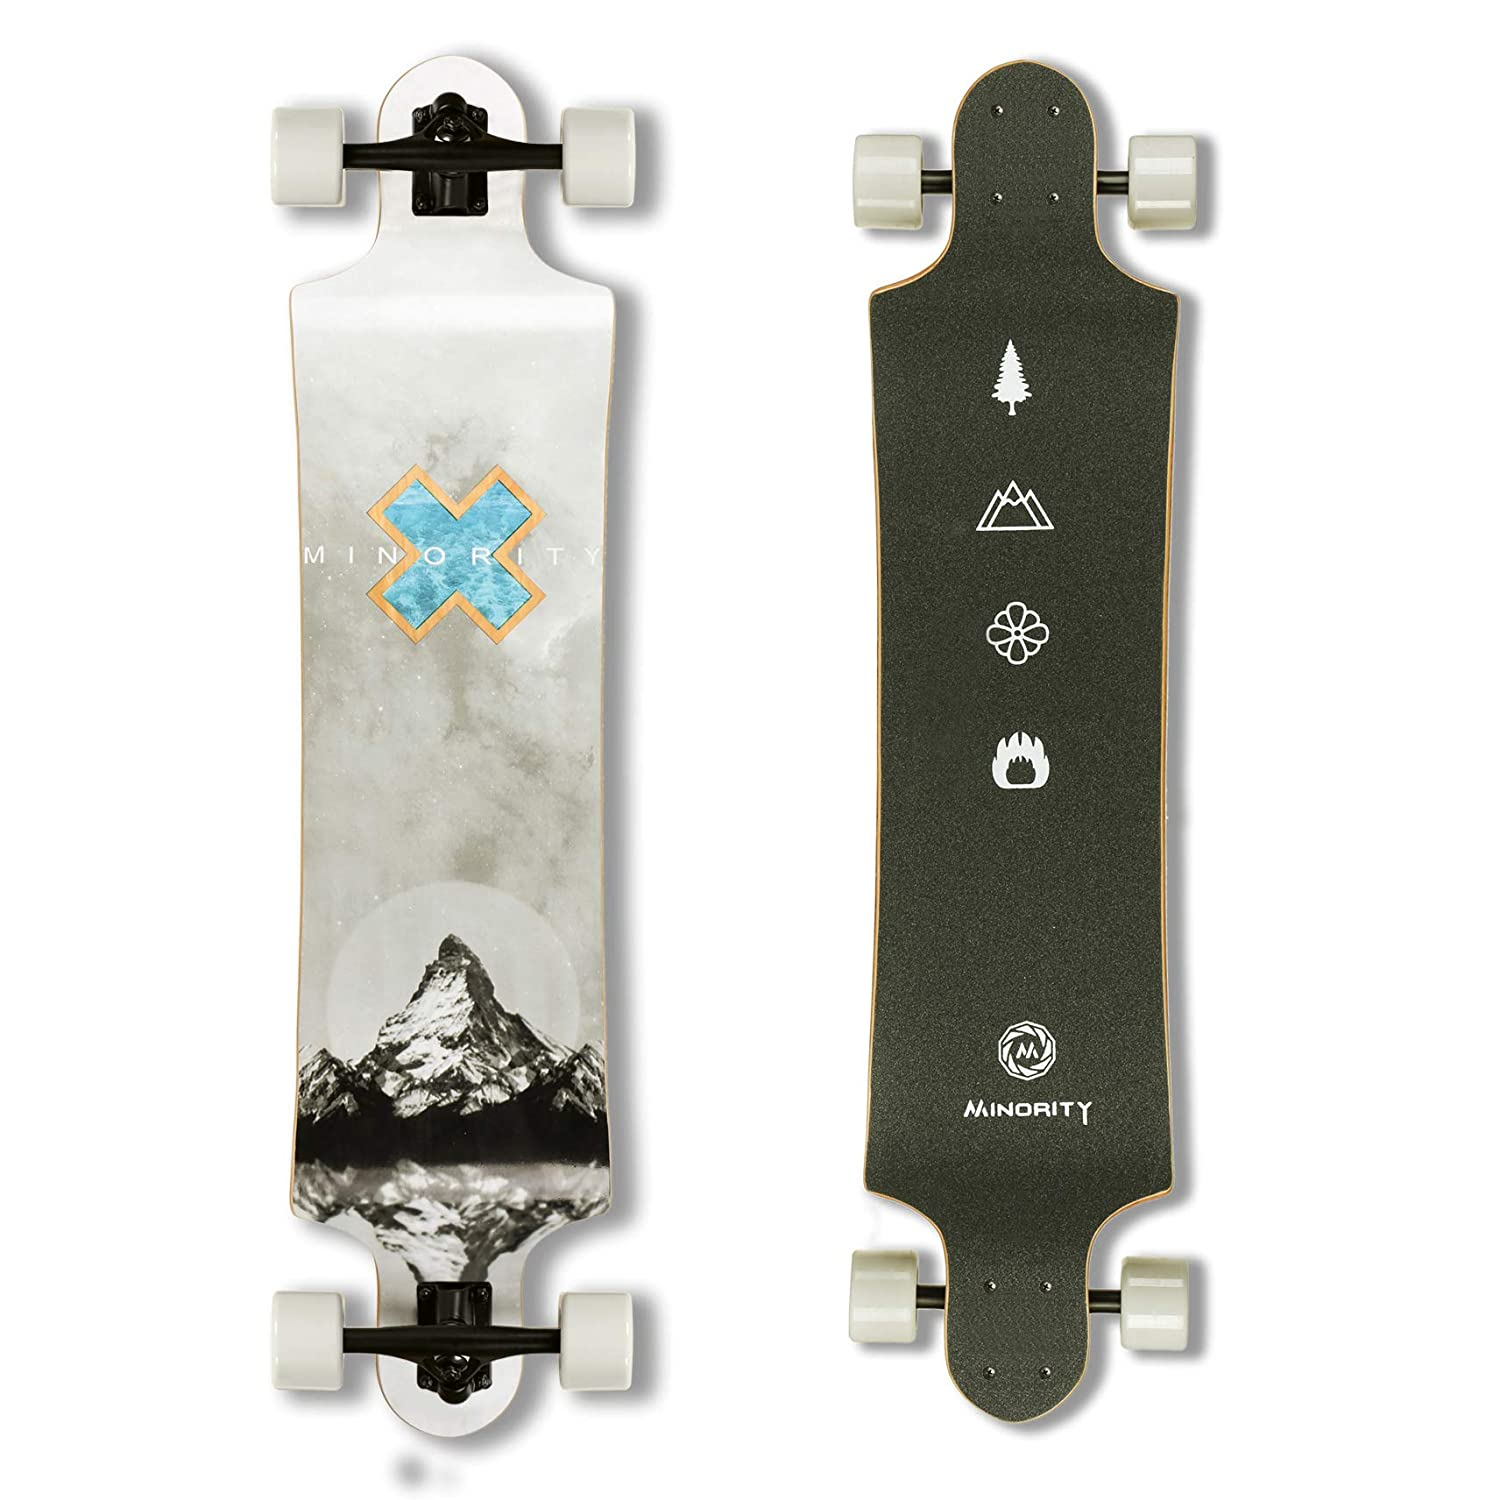 10 Best Longboards For Cruising Under 100 in 2019 [Review – Buyer's Guide] 8